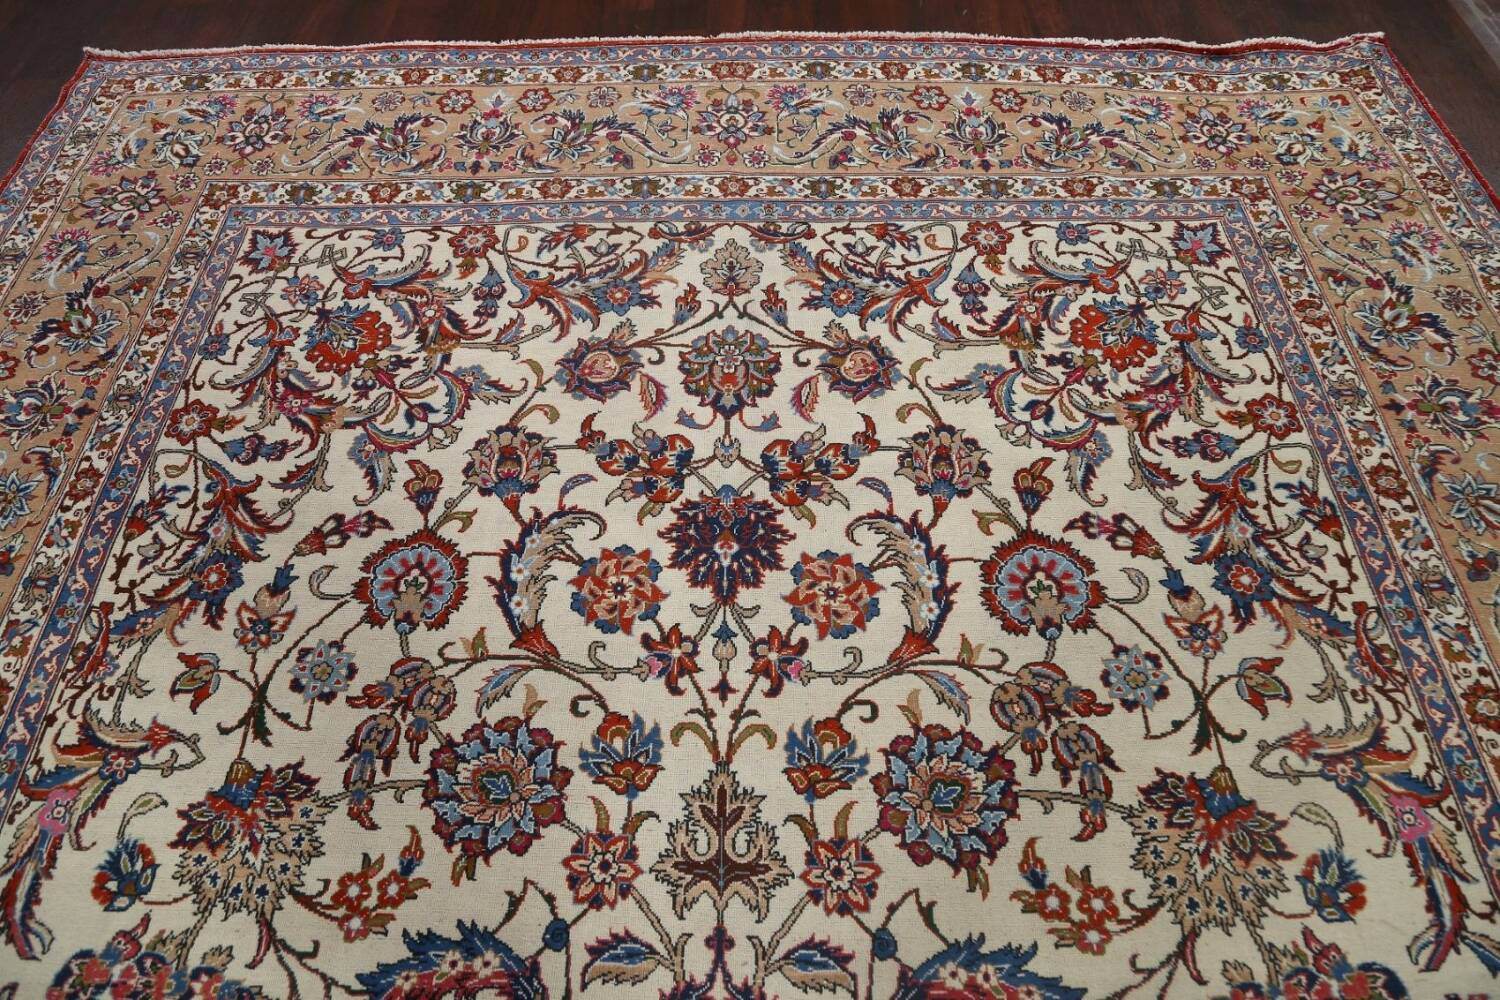 Antique Wool Oversized Isfahan Persian Rug 10x17 image 11